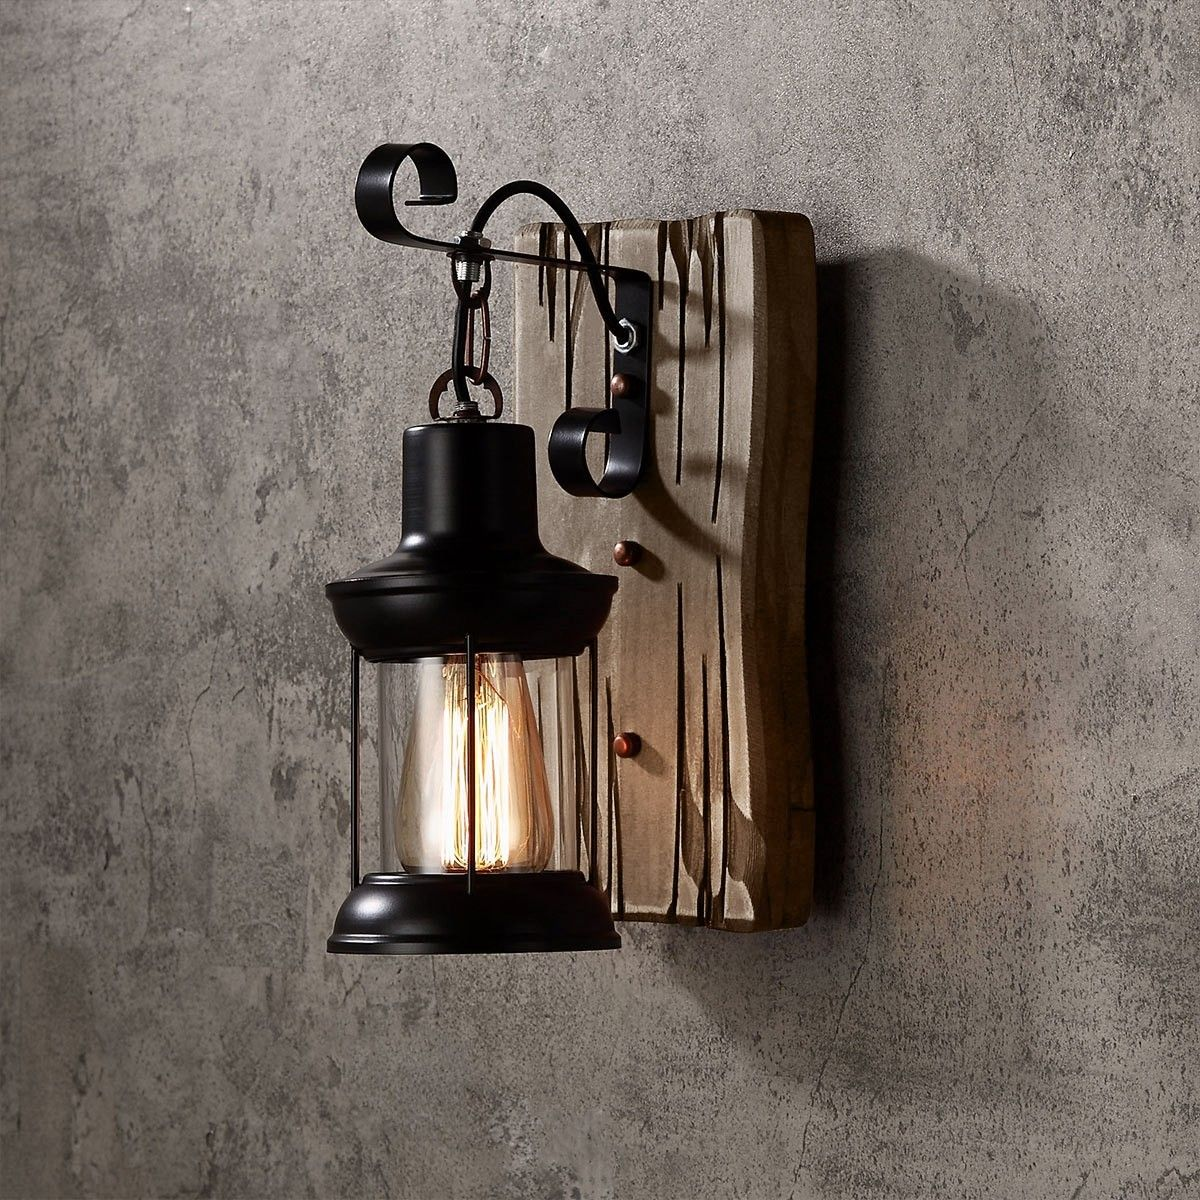 Fantastic The Many Features Of Wall Lighting Fixtures Wall Lamps Diy Industrial Wall Lamp Industrial Wall Lights